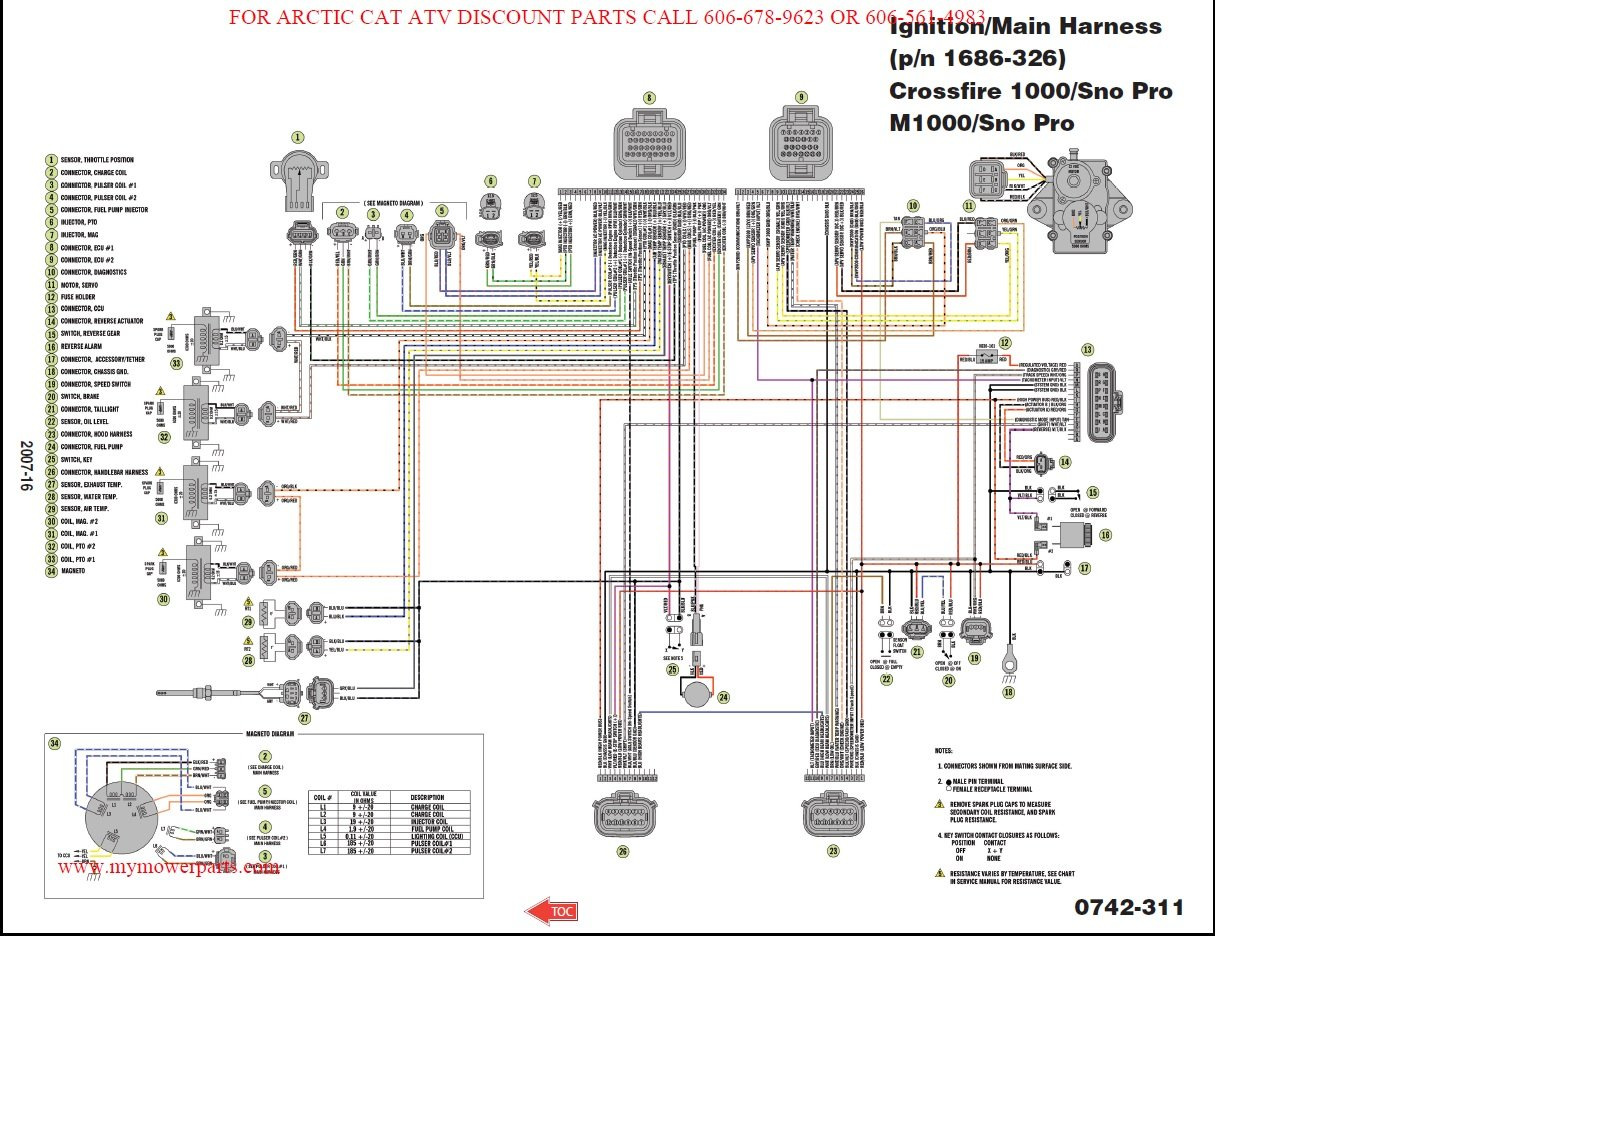 hight resolution of 2006 wildcat camper wiring diagram wiring diagram blogs cat wiring diagrams 1988 wildcat wiring diagram